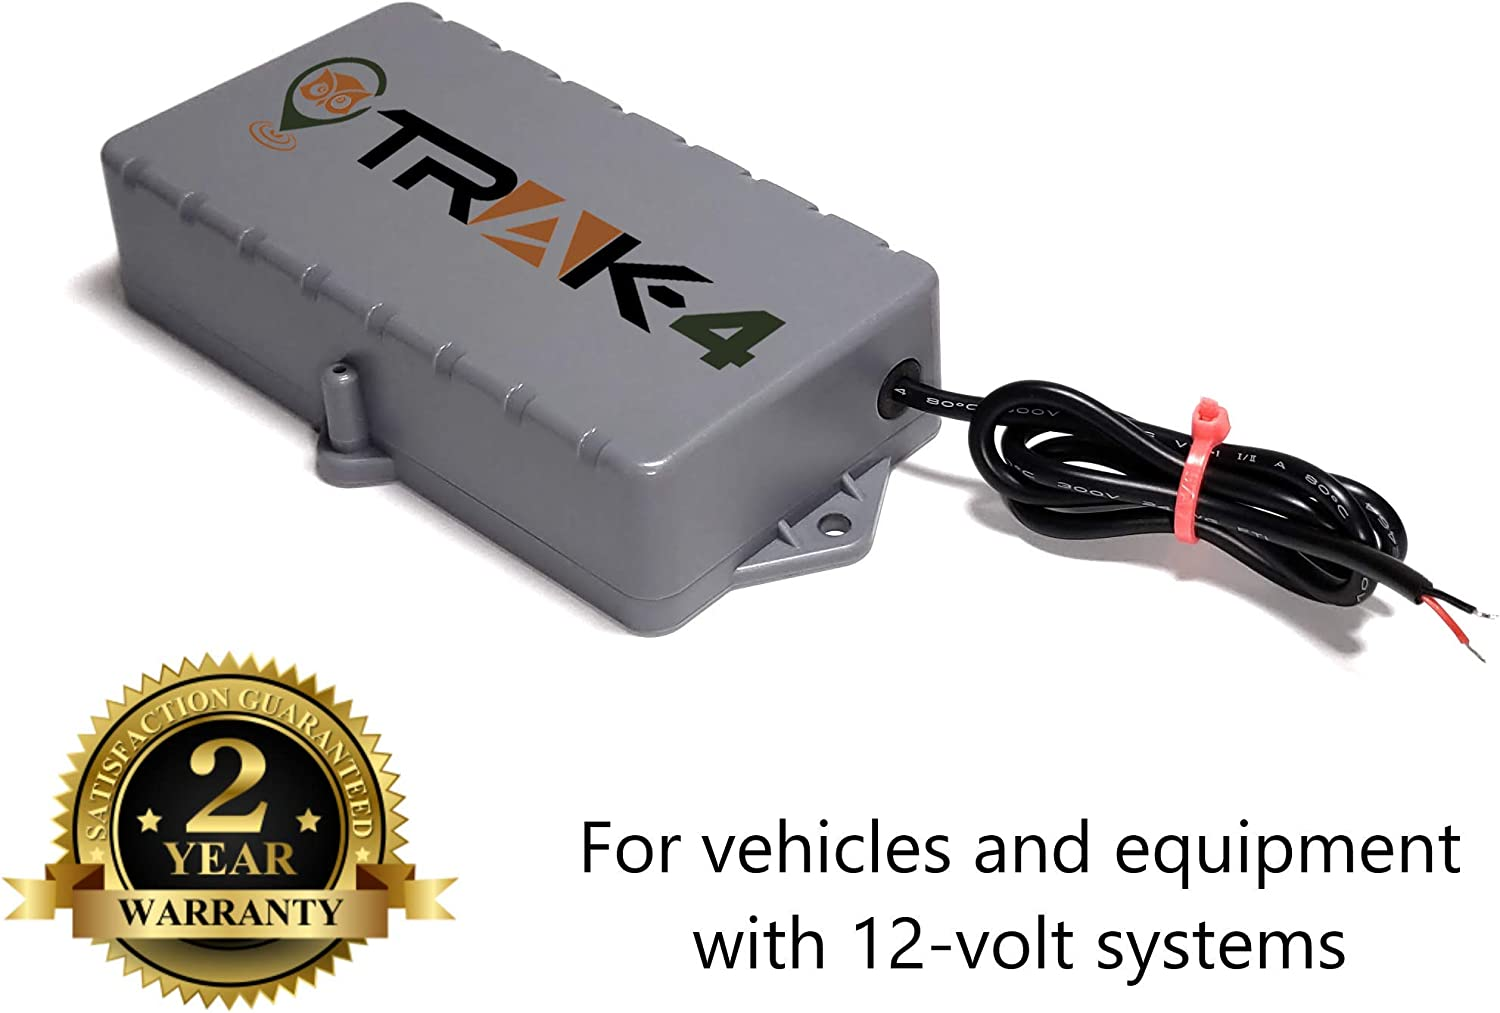 Amazon.com: Trak-4 12v GPS Tracker with Wiring Harness for Tracking  Equipment, Vehicles, and Assets: ElectronicsAmazon.com